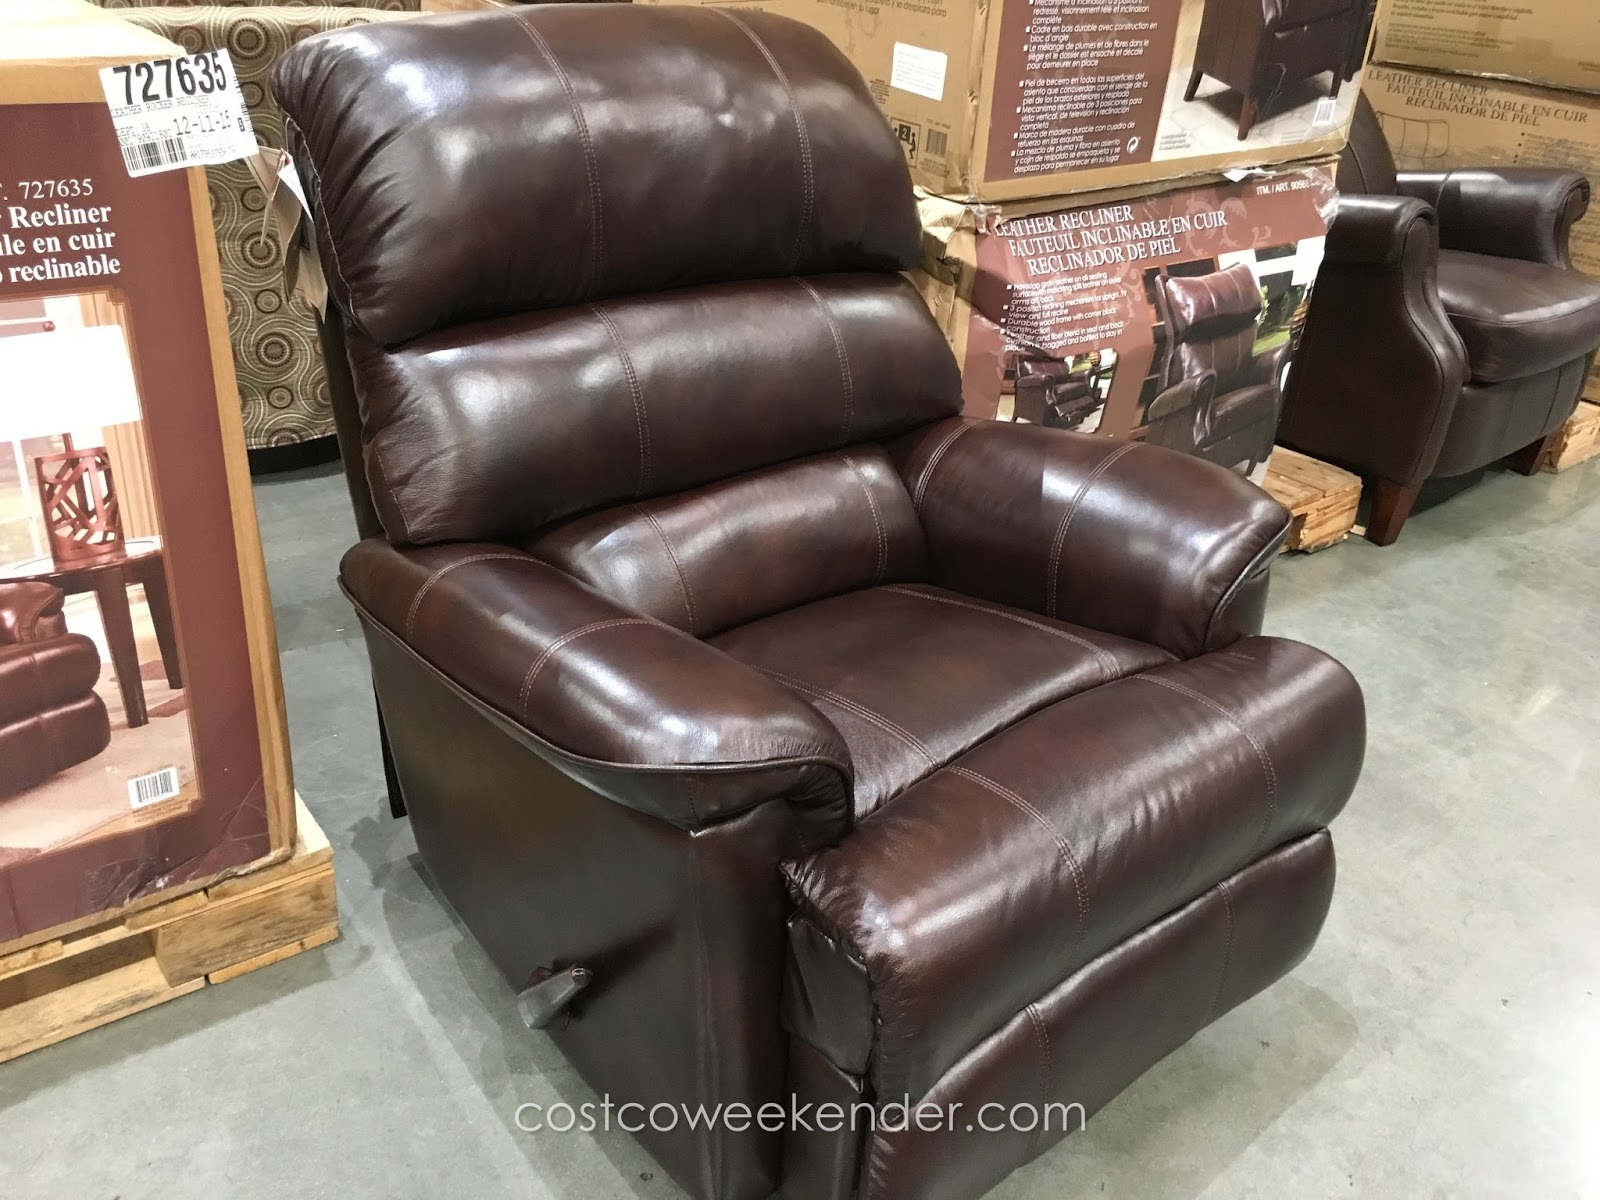 Relax in comfort on the Barcalounger Leather Rocker Recliner Chair & Barcalounger Leather Rocker Recliner Chair | Costco Weekender islam-shia.org